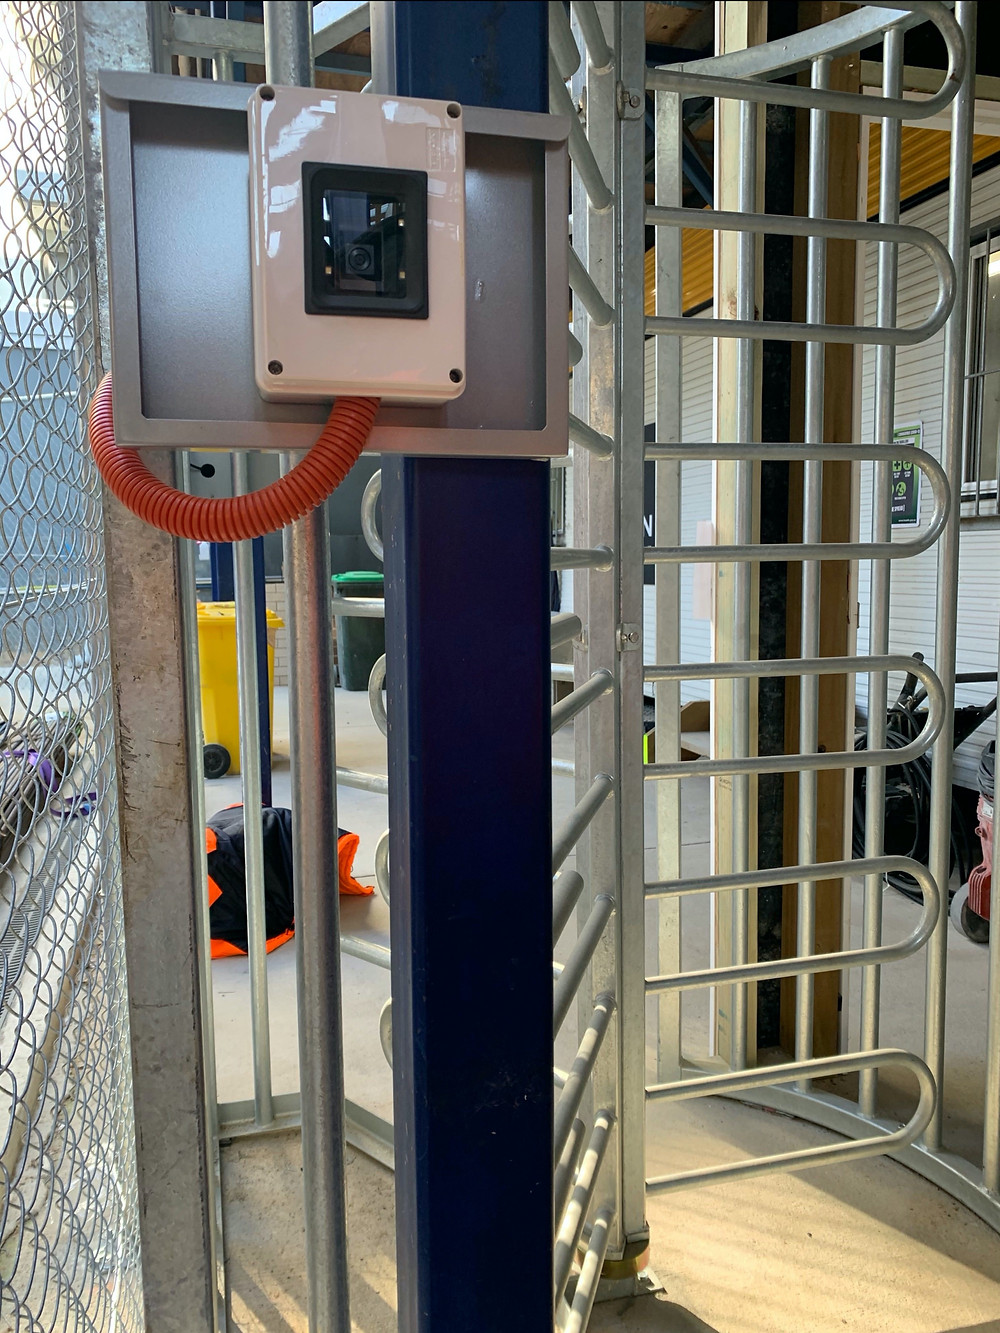 TIKS - Integrated turnstile solution